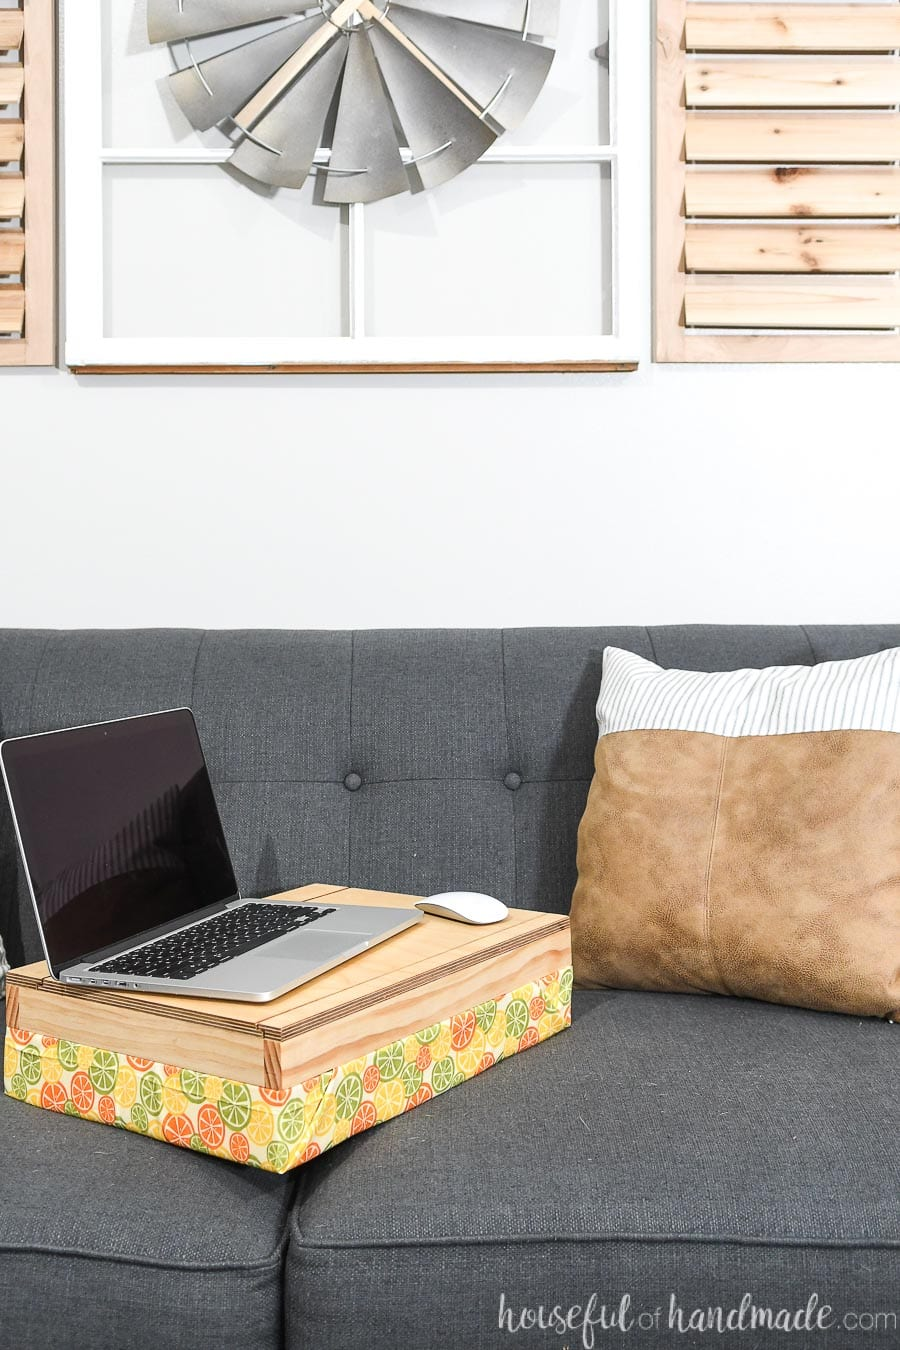 Homemade lap desk with storage on the couch with a laptop on it.